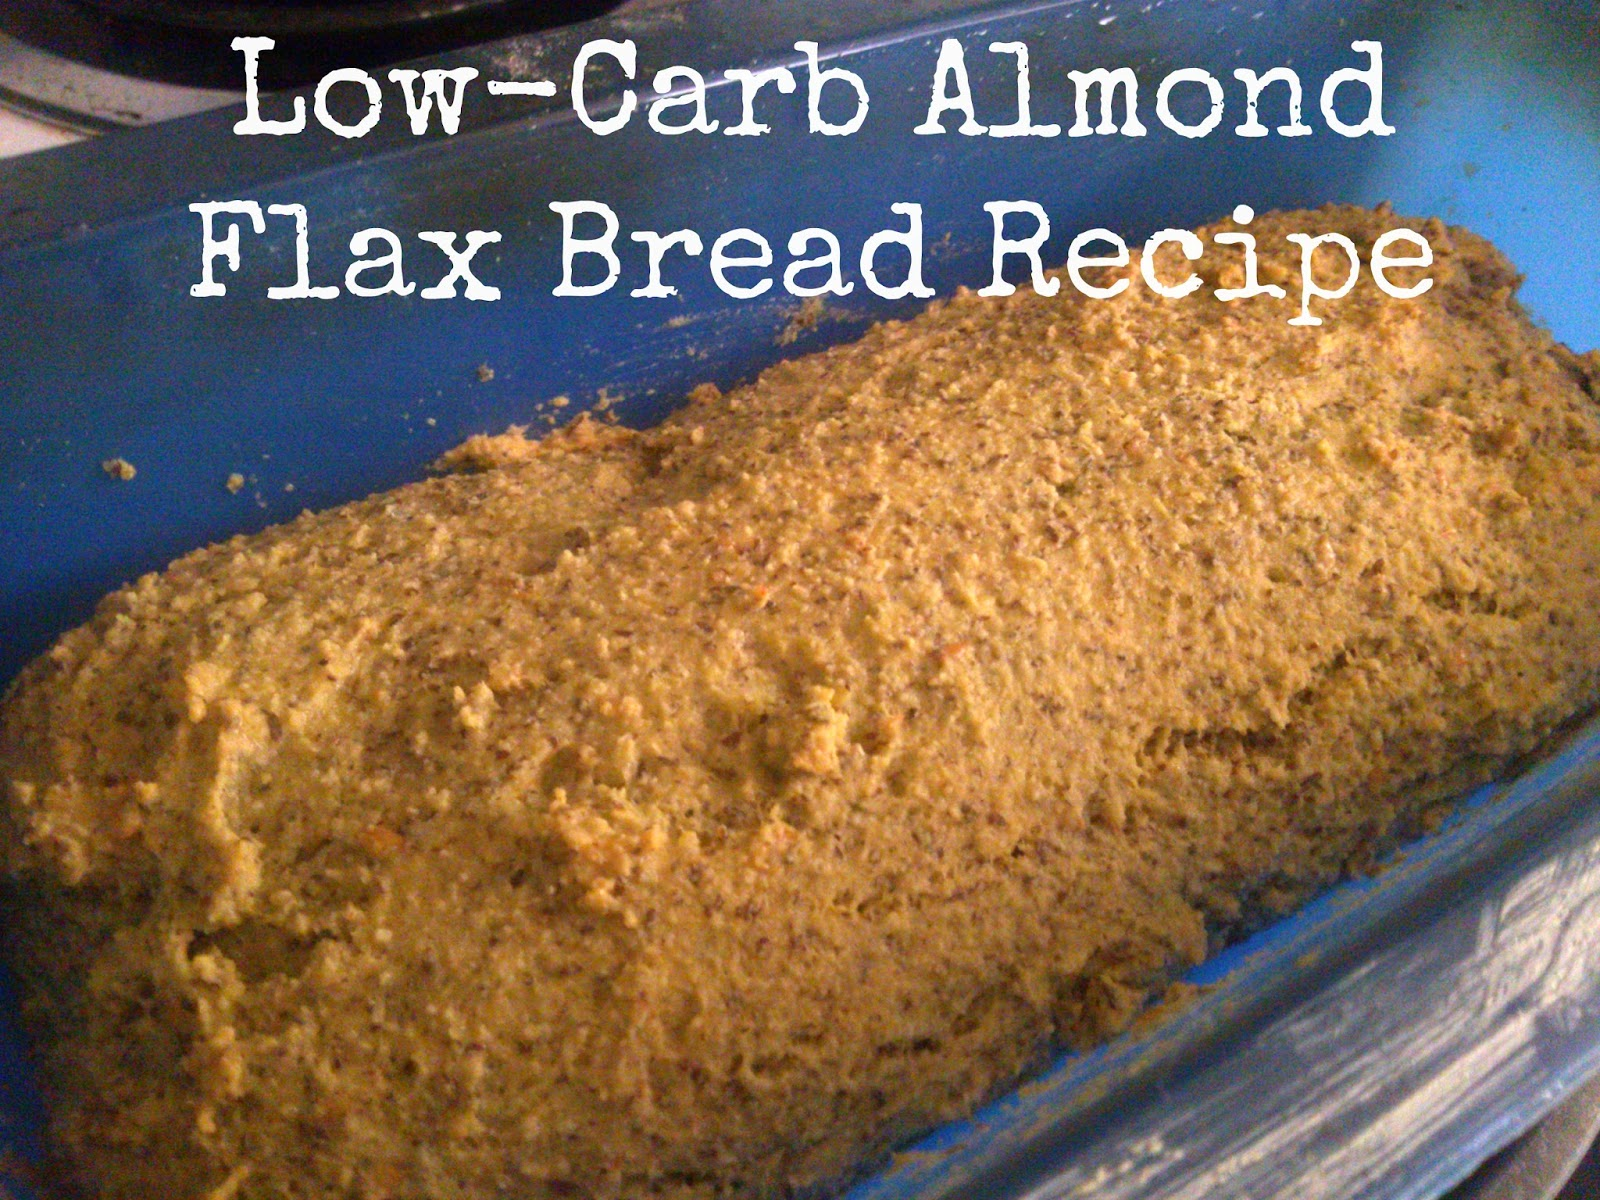 Organic Golden Flax Seed Review + Almond Flax Bread Recipe